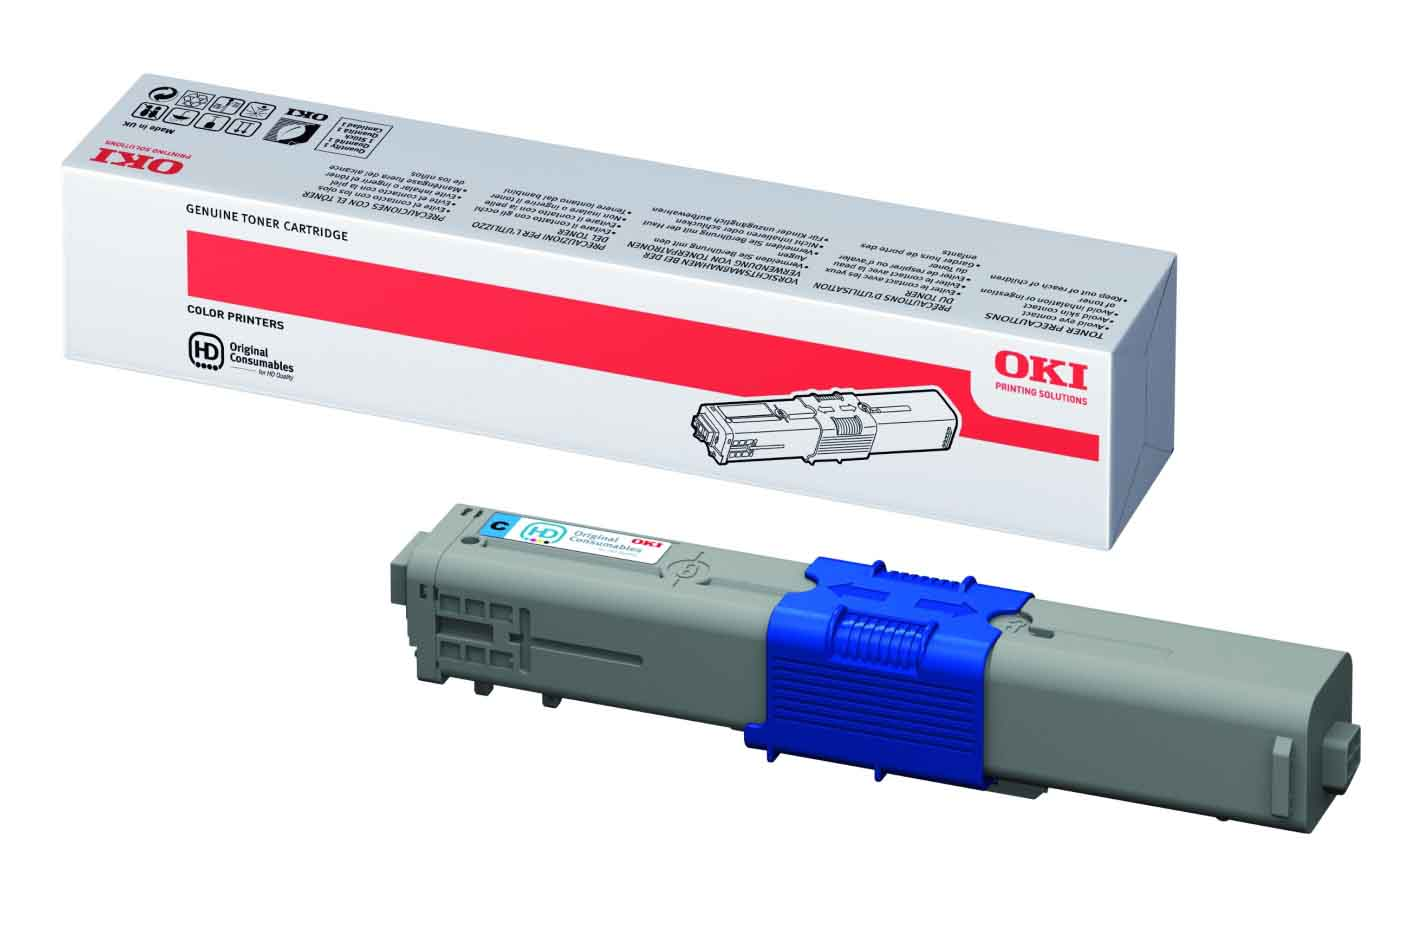 Genuine High Capacity Cyan Oki 44469724 Toner Cartridge - (44469724)